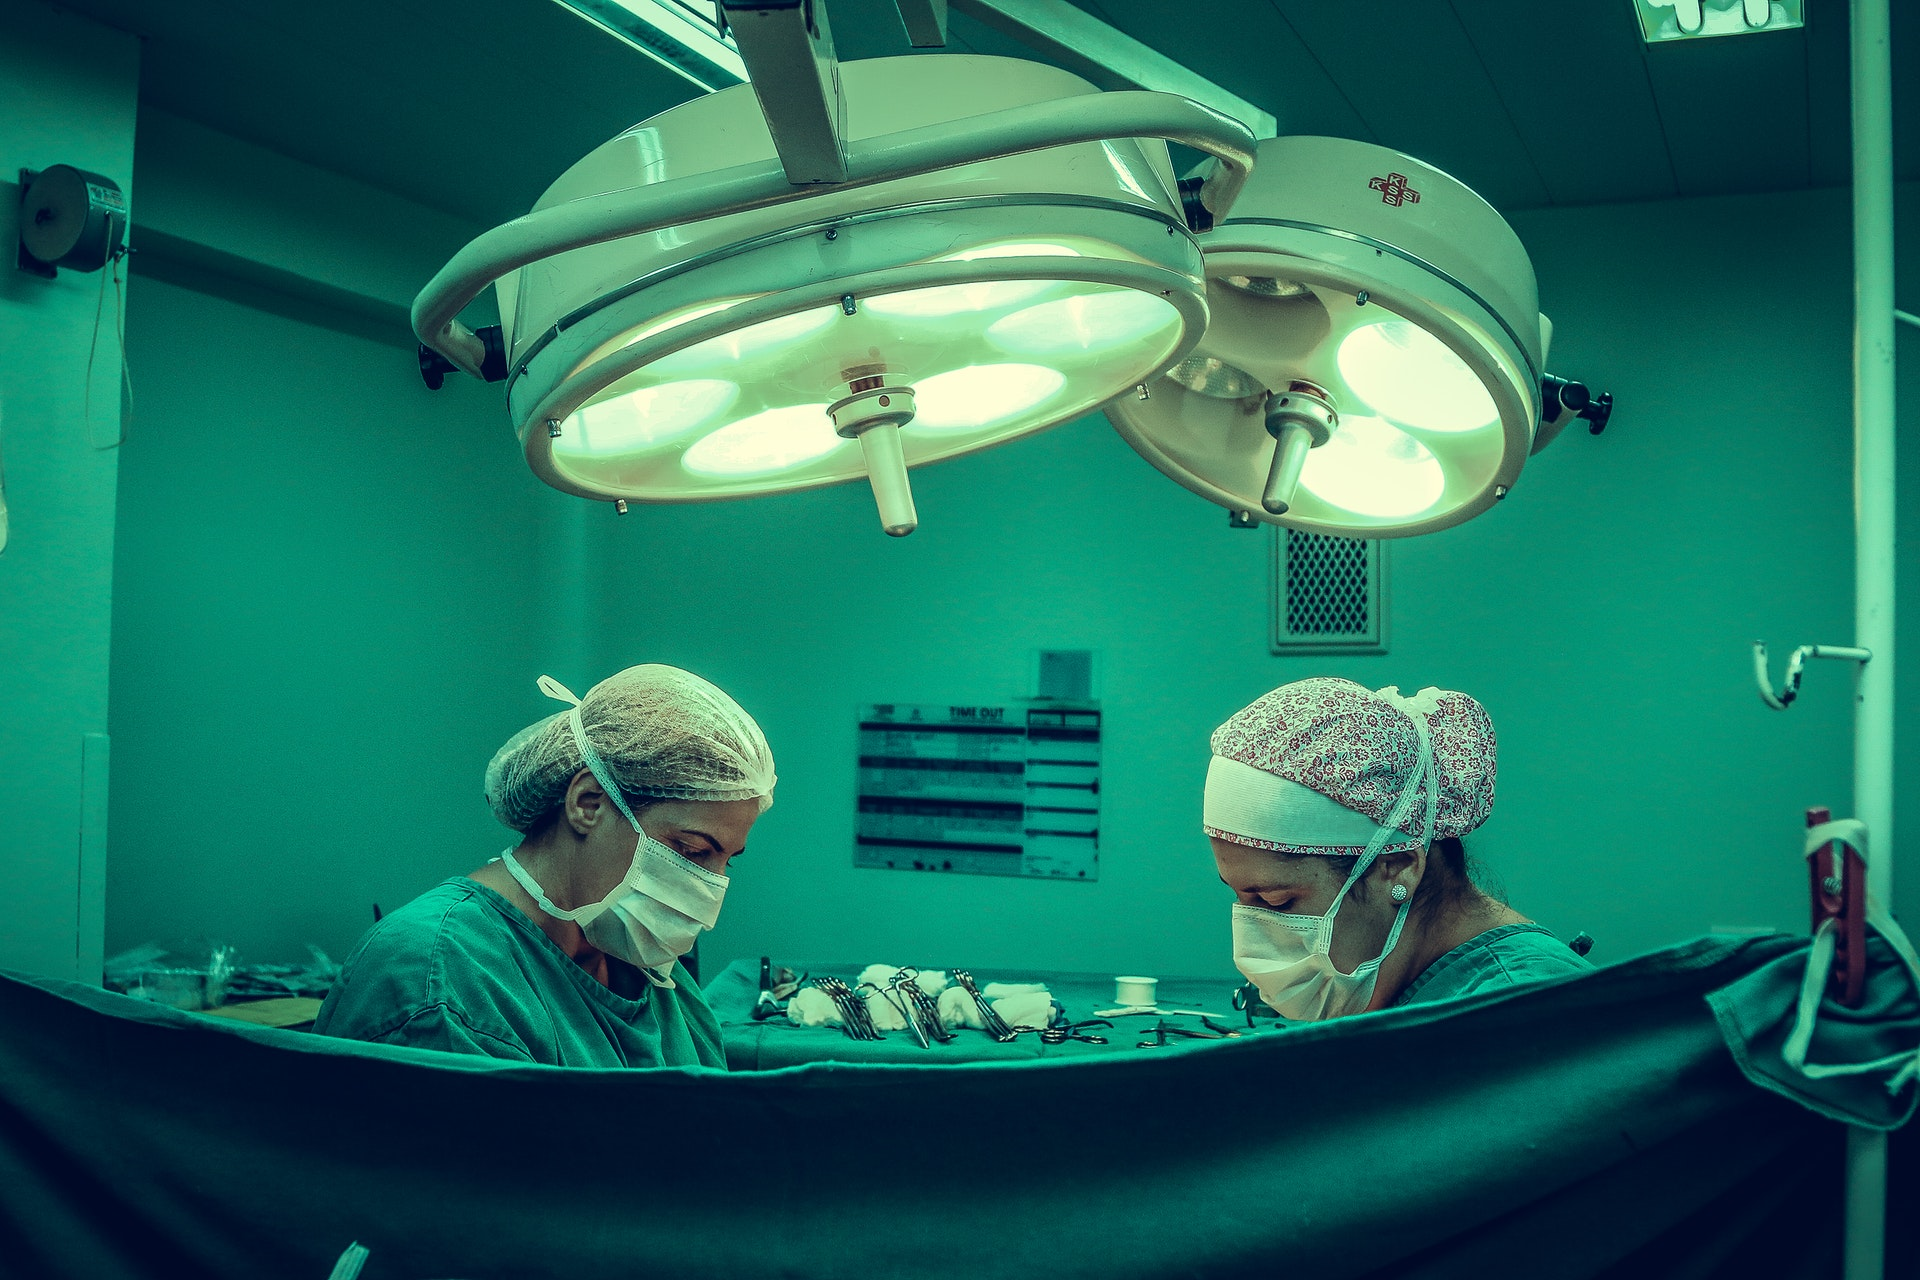 internet of things for healthcare, operating theater